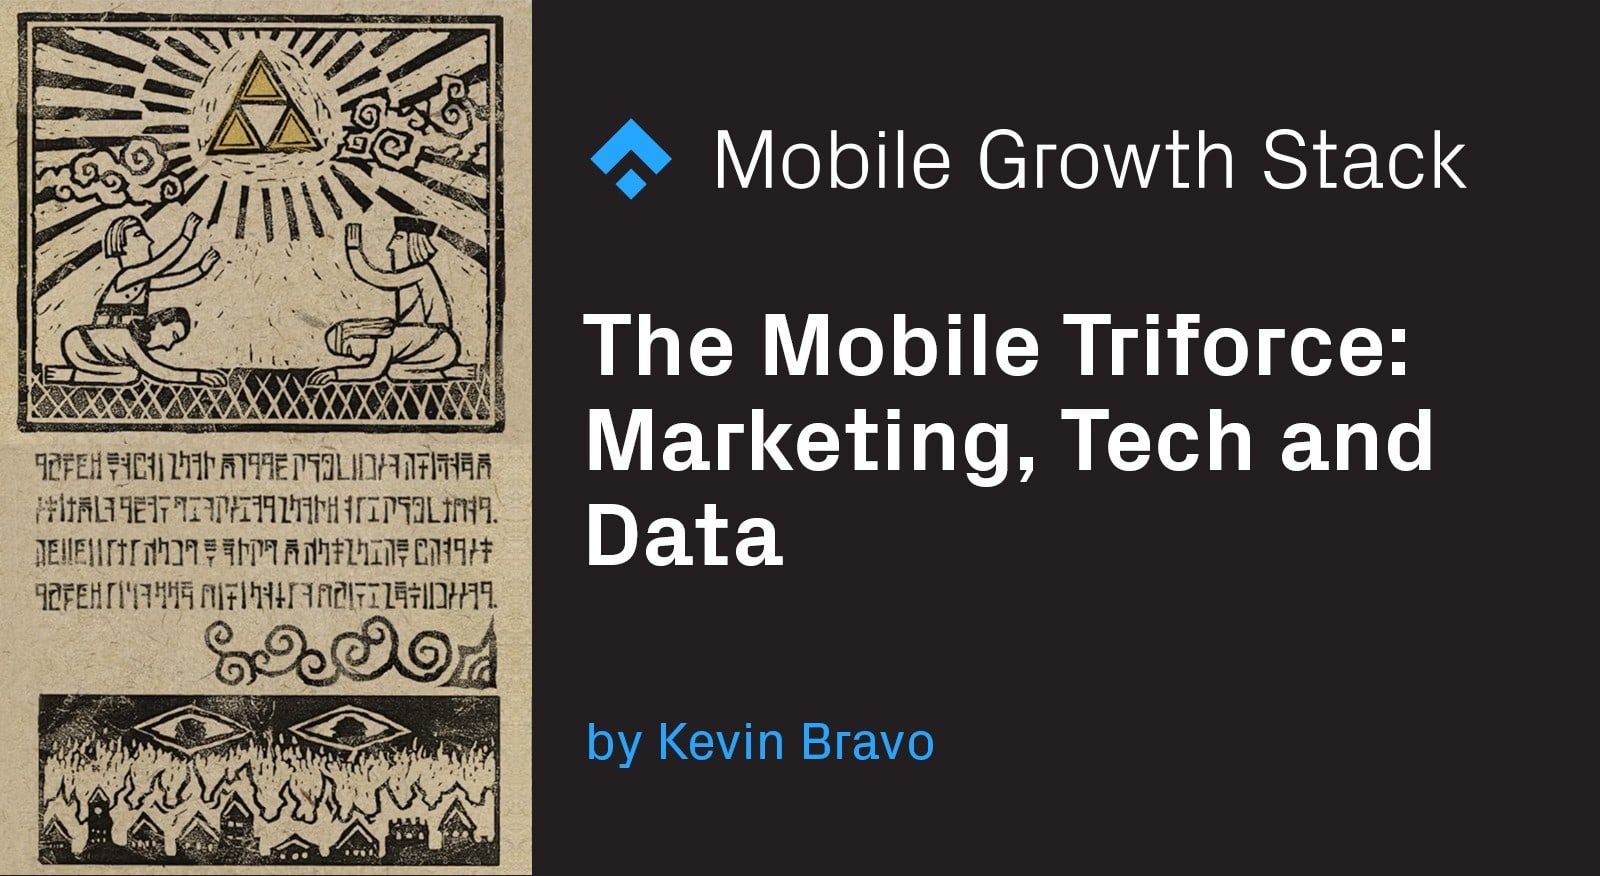 The Mobile Triforce- Marketing, Tech, and Data